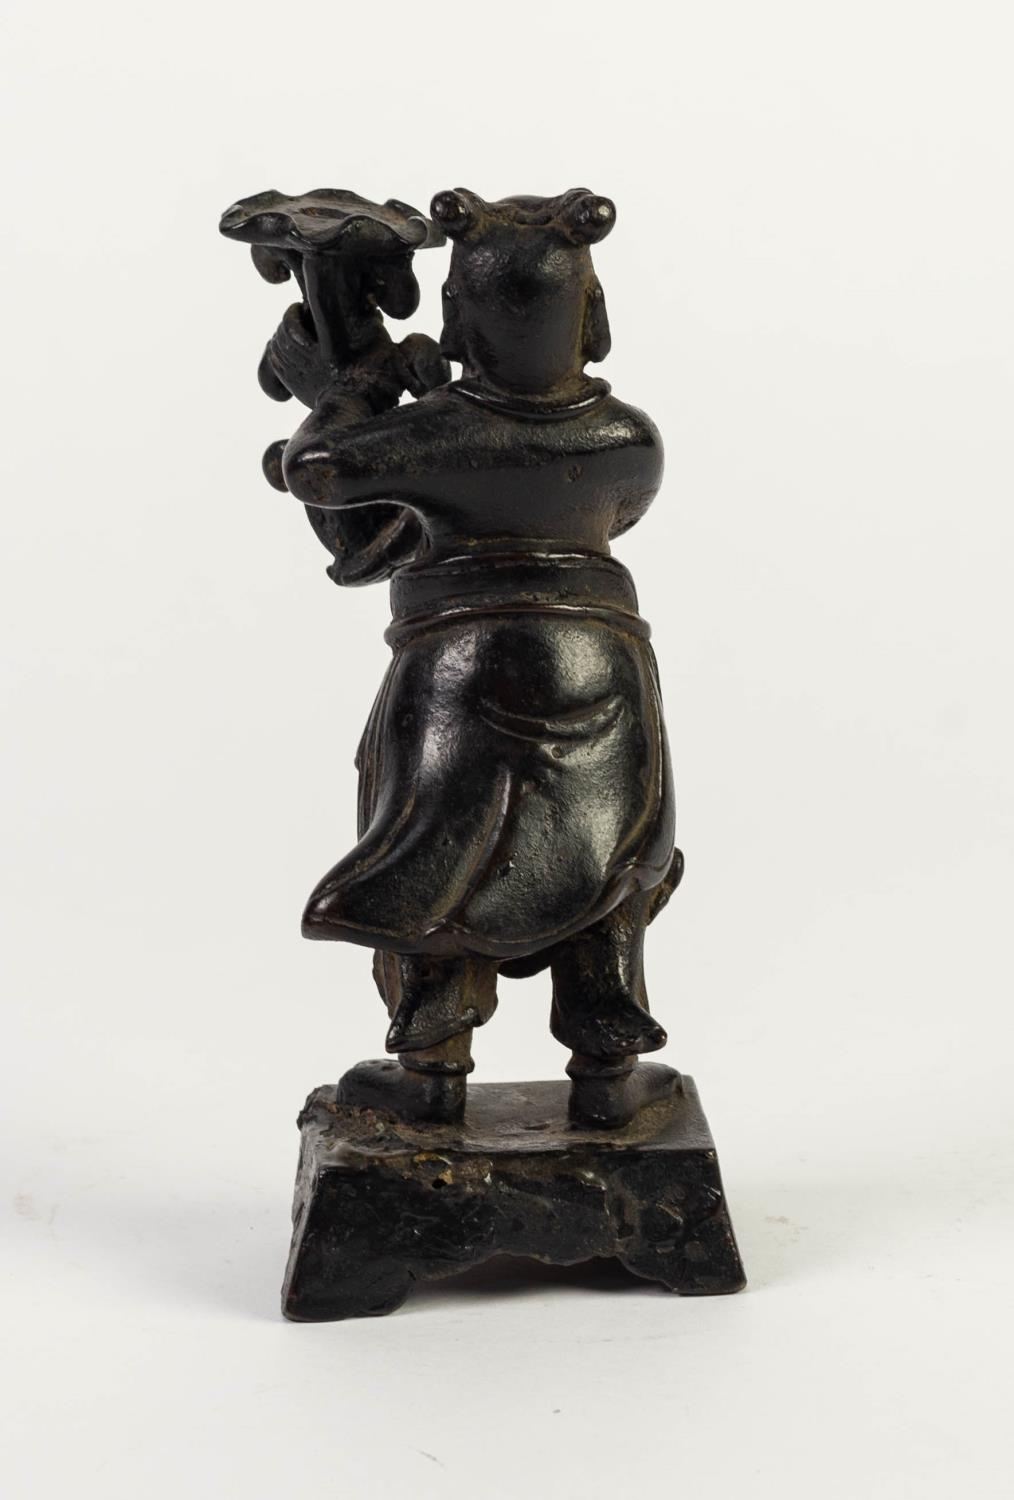 ANTIQUE CHINESE PATINATED BRONZE FIGURAL CANDLESTICK, modelled as a robed figure holding a floral - Image 2 of 2